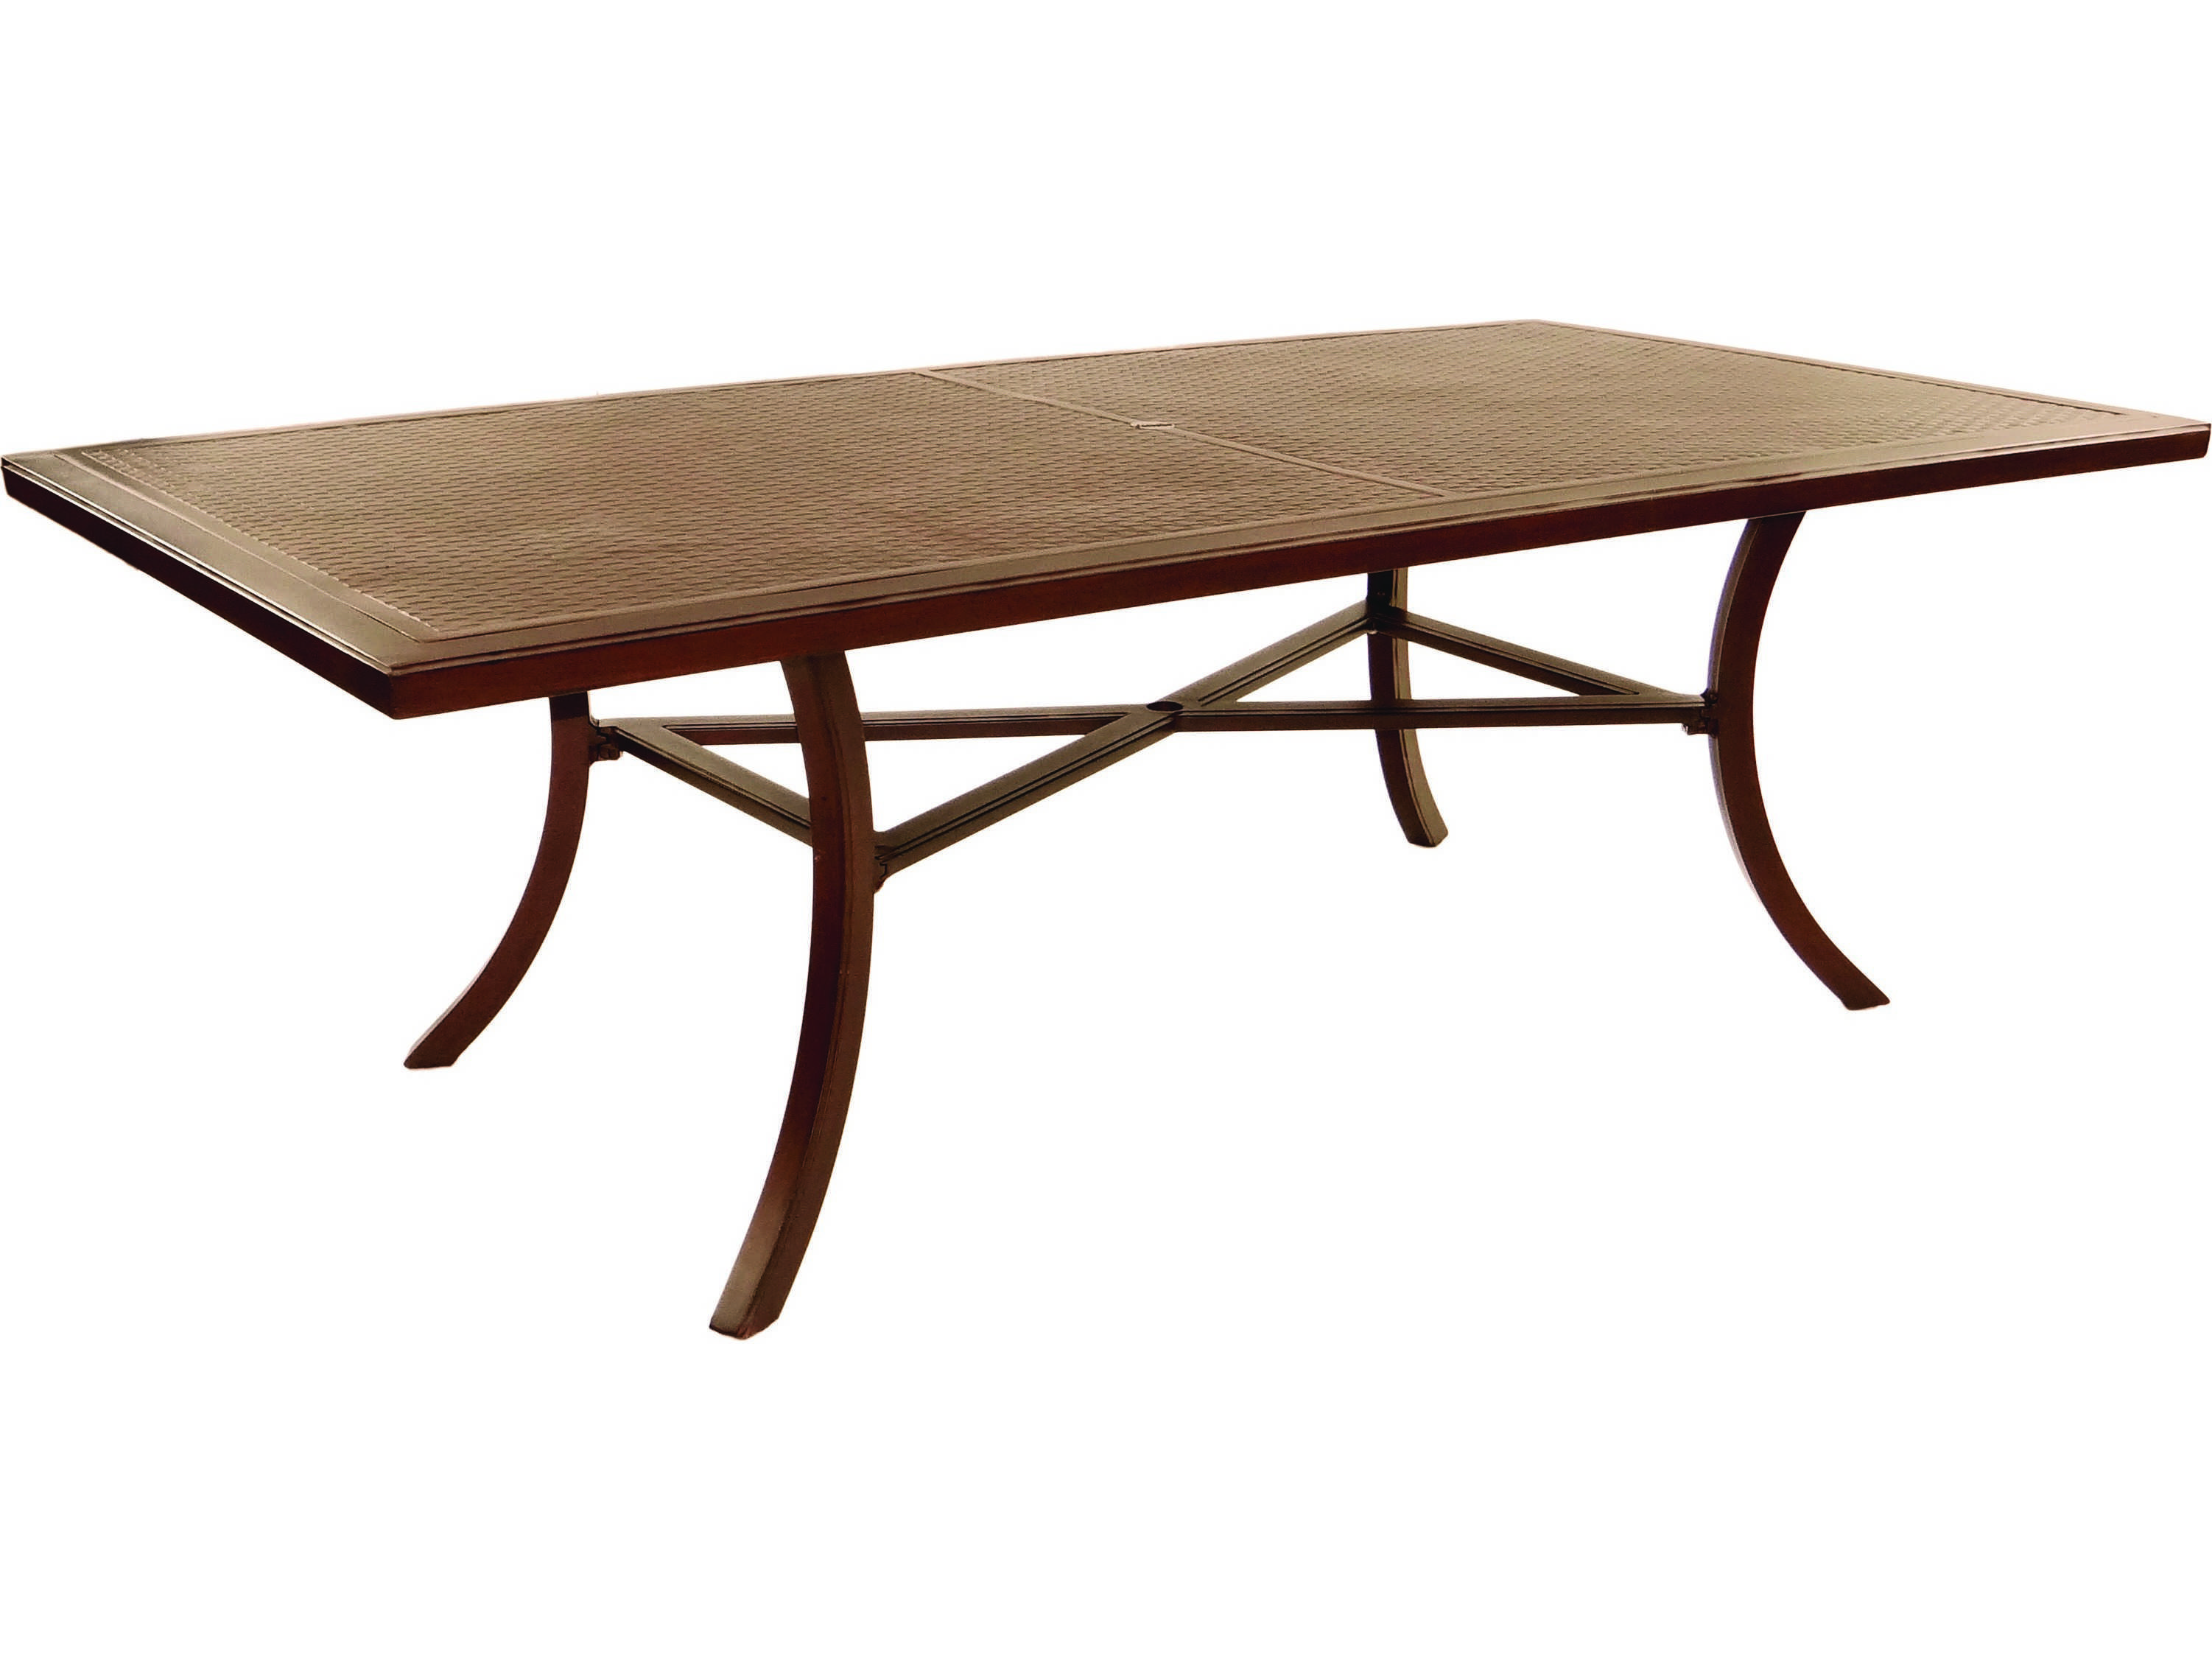 Castelle Transitional Cast Aluminum 86 X 44 Rectangular Dining Table Ready To